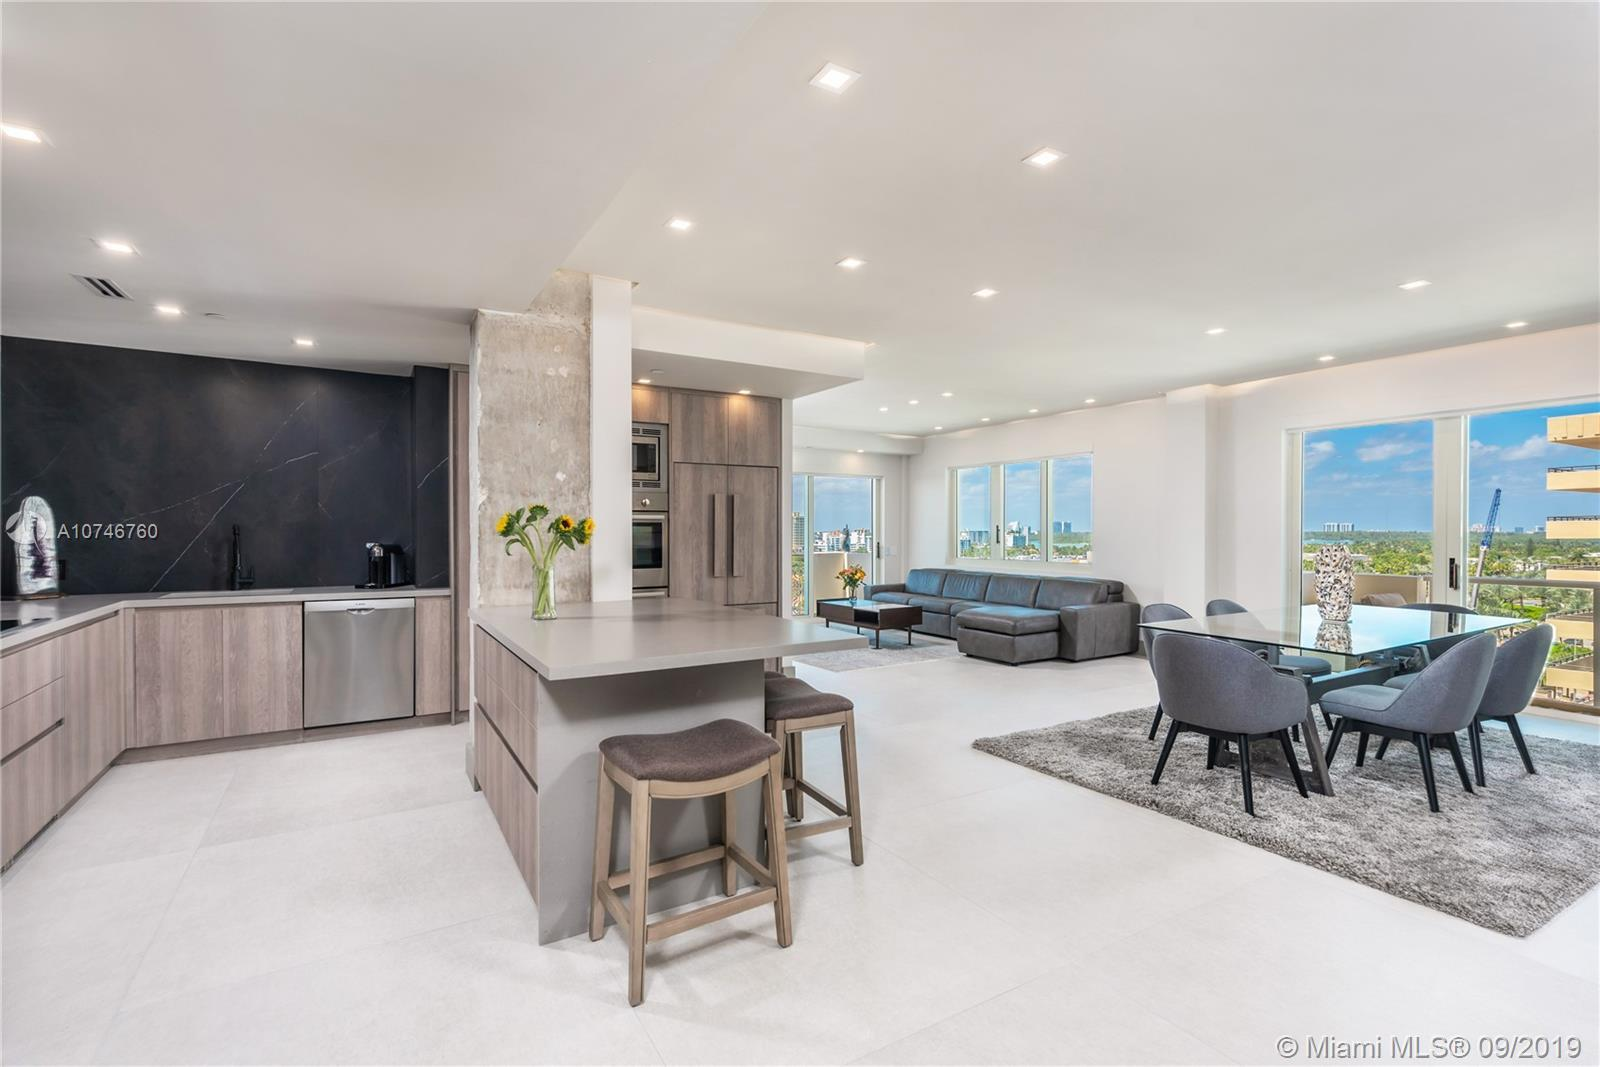 Completely Remodeled HIGH END Modern 2 Story Penthouse 2,173 sq.ft  - 3 Bed / 3 Bath with 4 separate